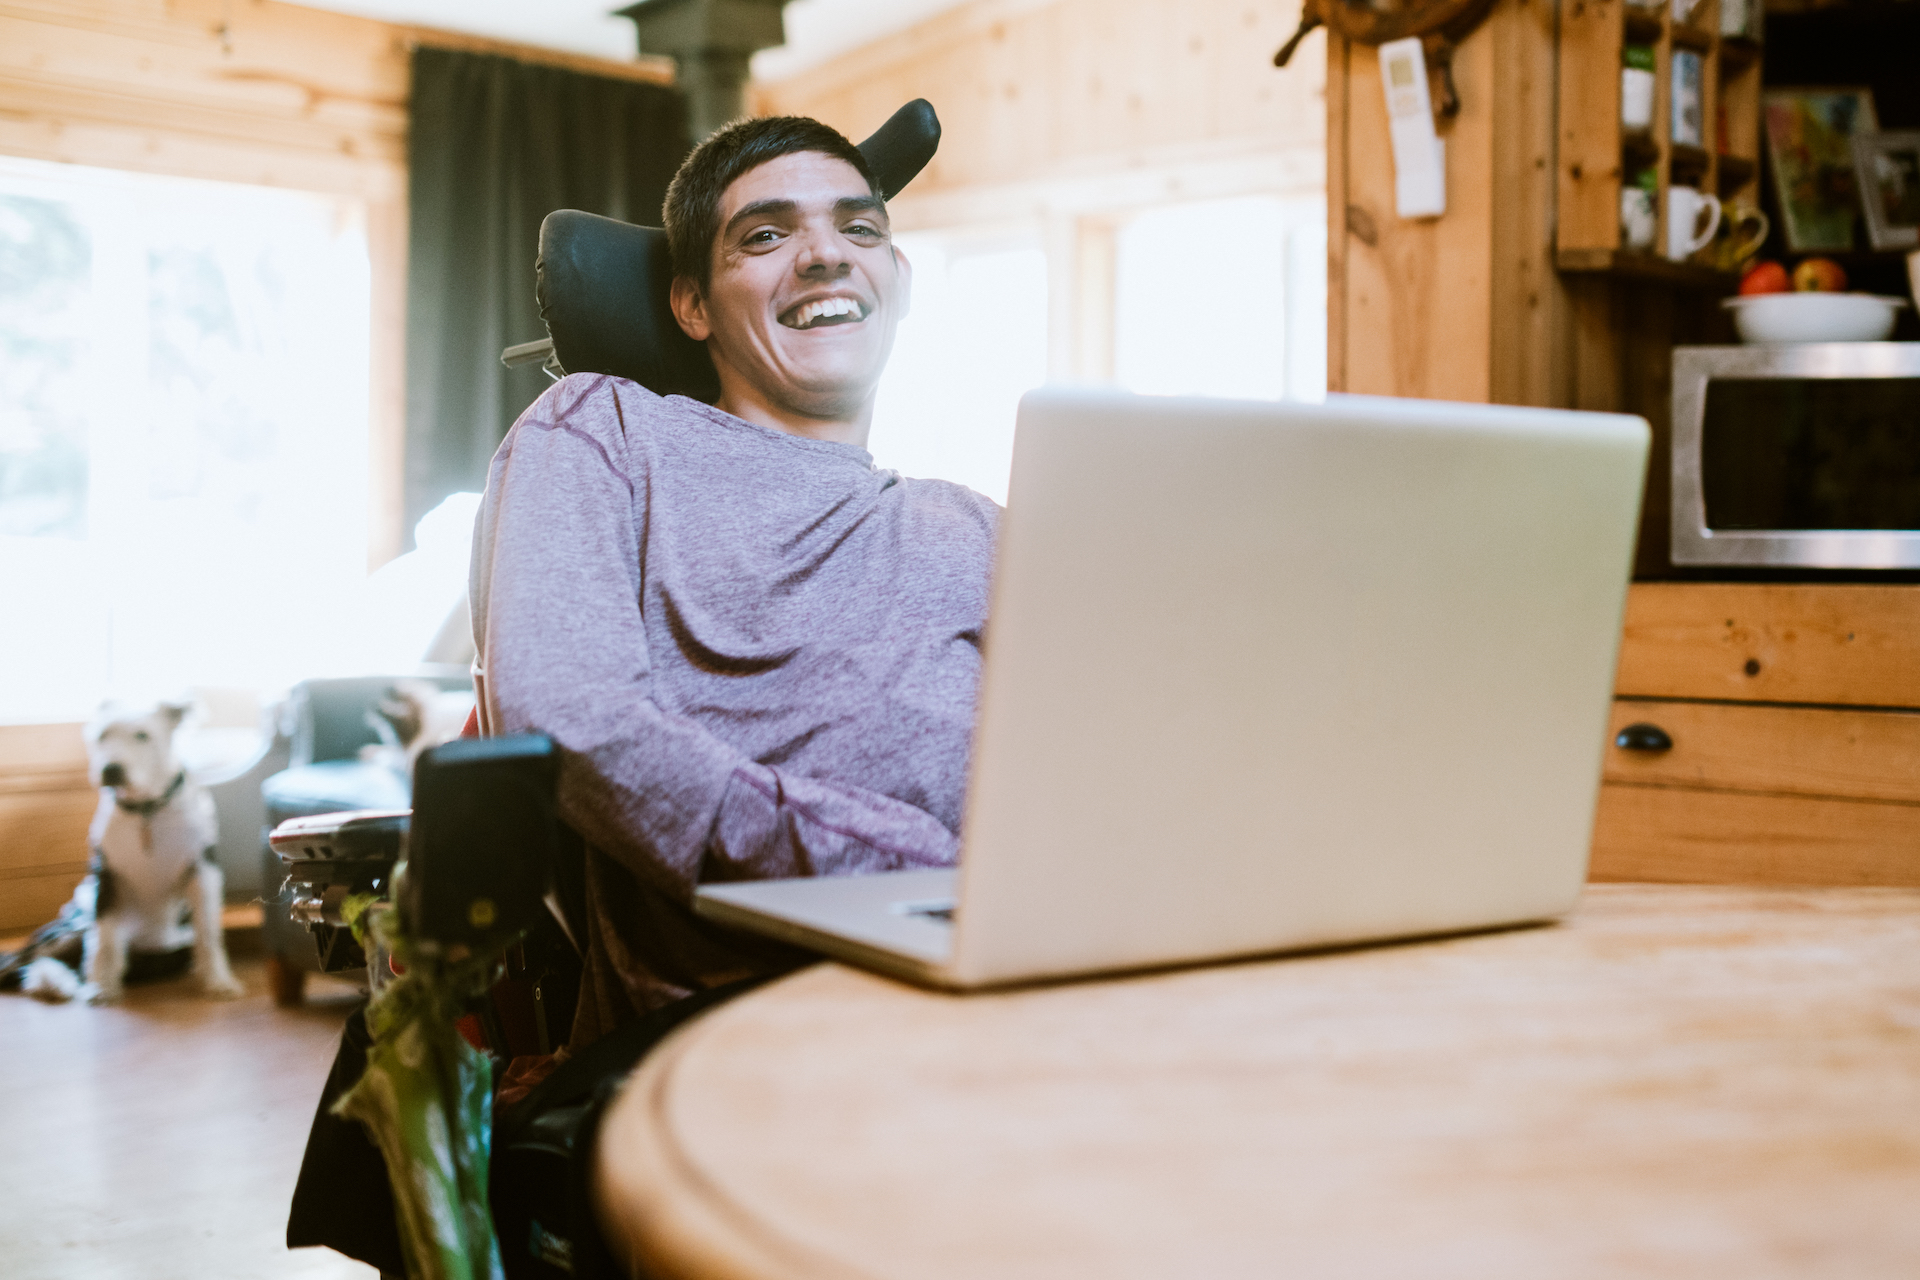 Man with cerebral palsy researches something on his laptop, using voice recognition assistive technology